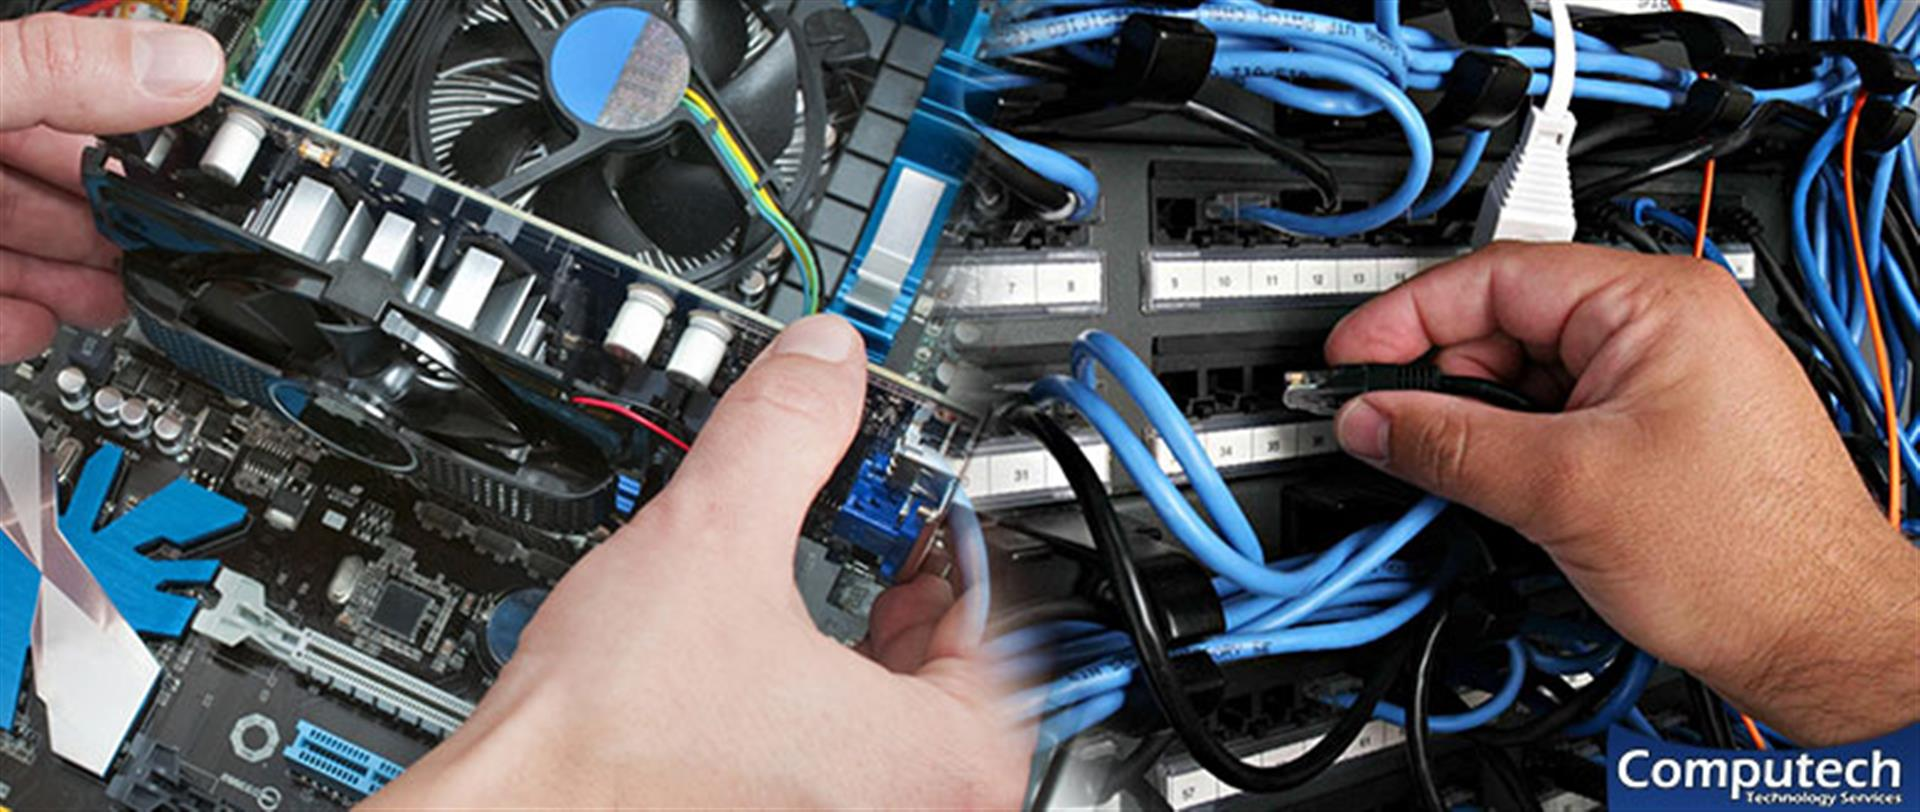 Forest Park Georgia On Site Computer PC & Printer Repair, Network, Voice & Data Cabling Solutions